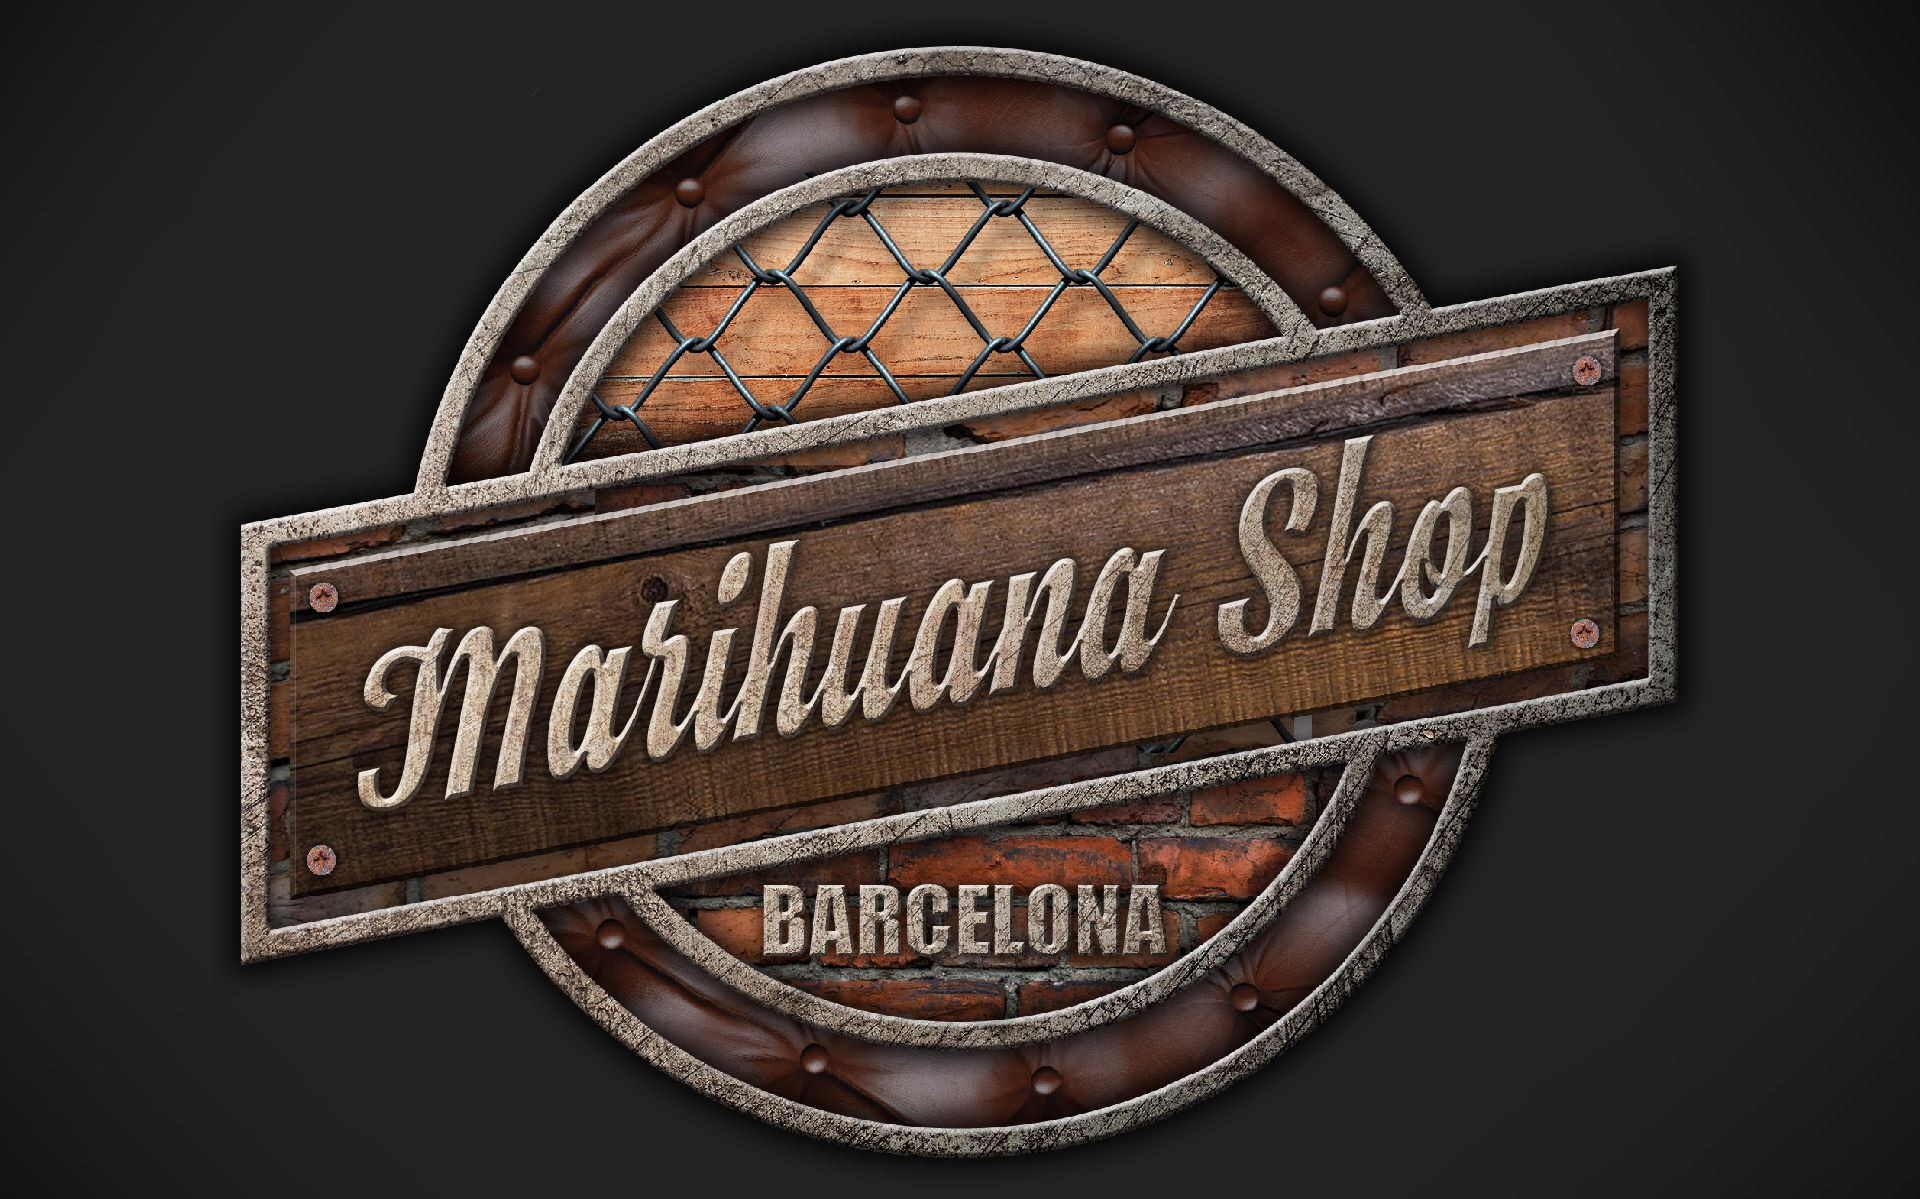 weed club Marijuana Shop barcelona